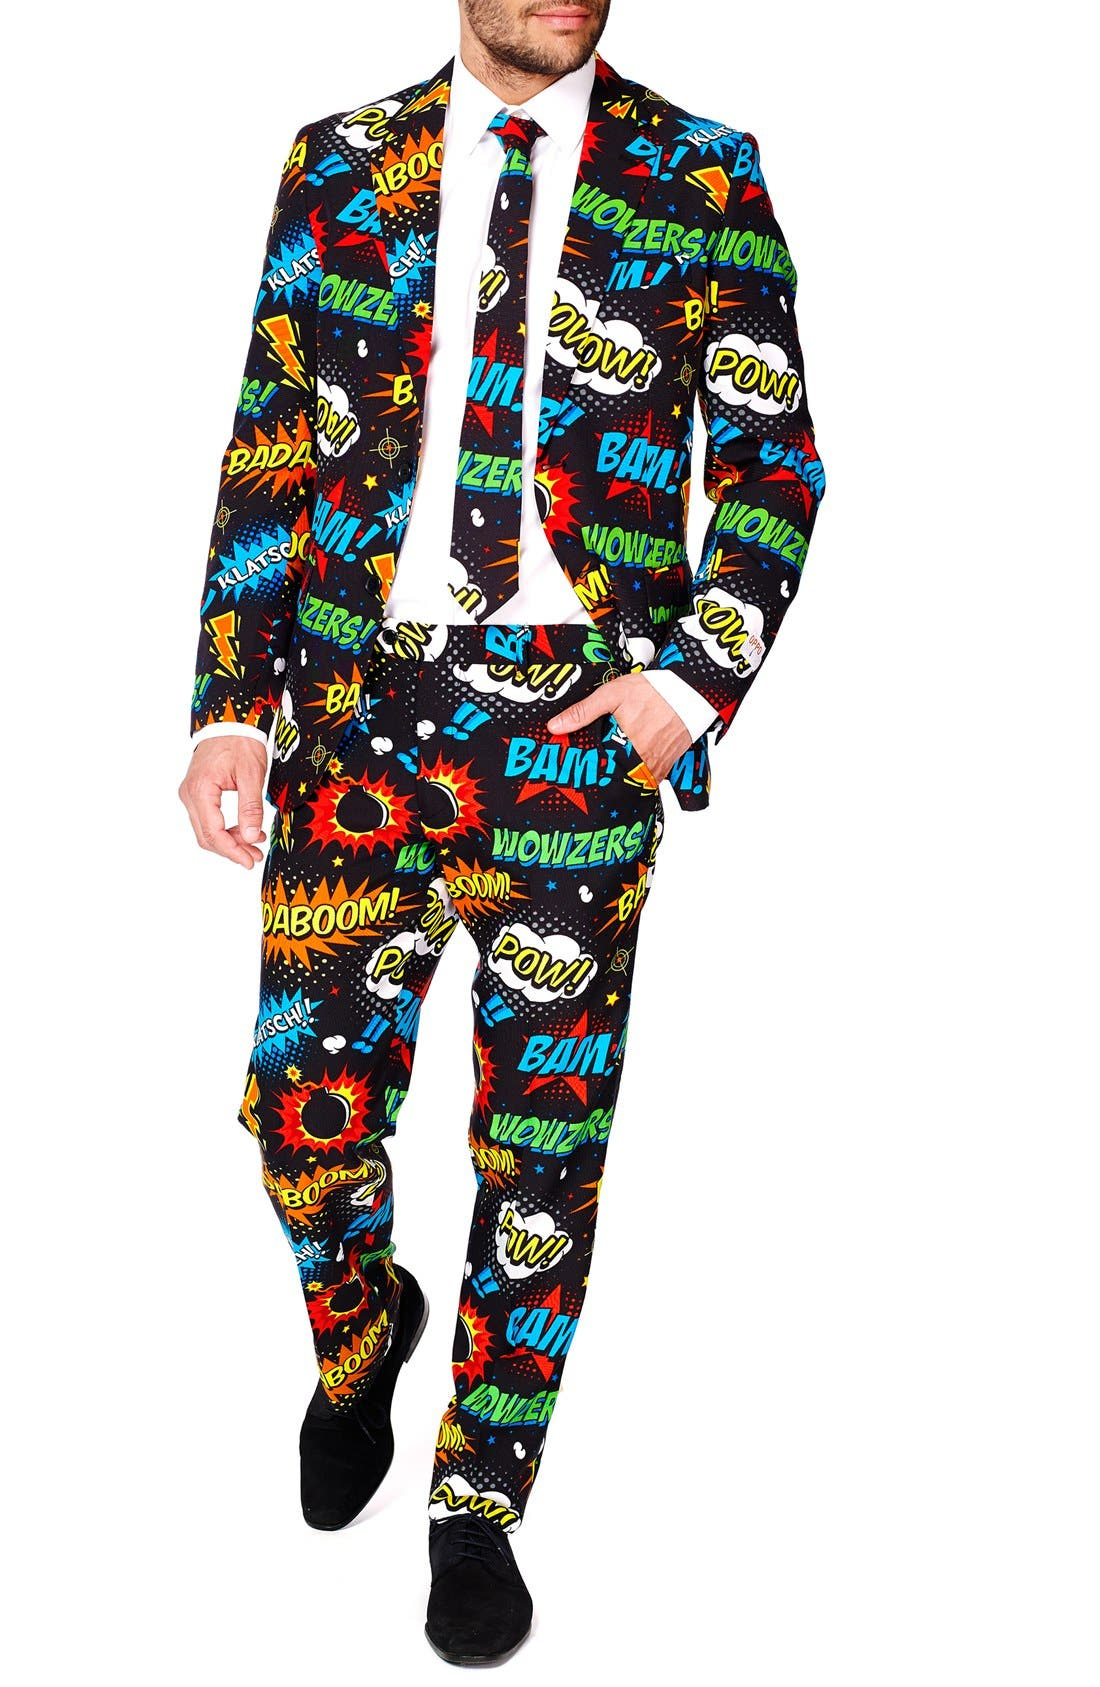 OppoSuits 'Badaboom' Trim Fit Two-Piece Suit with Tie